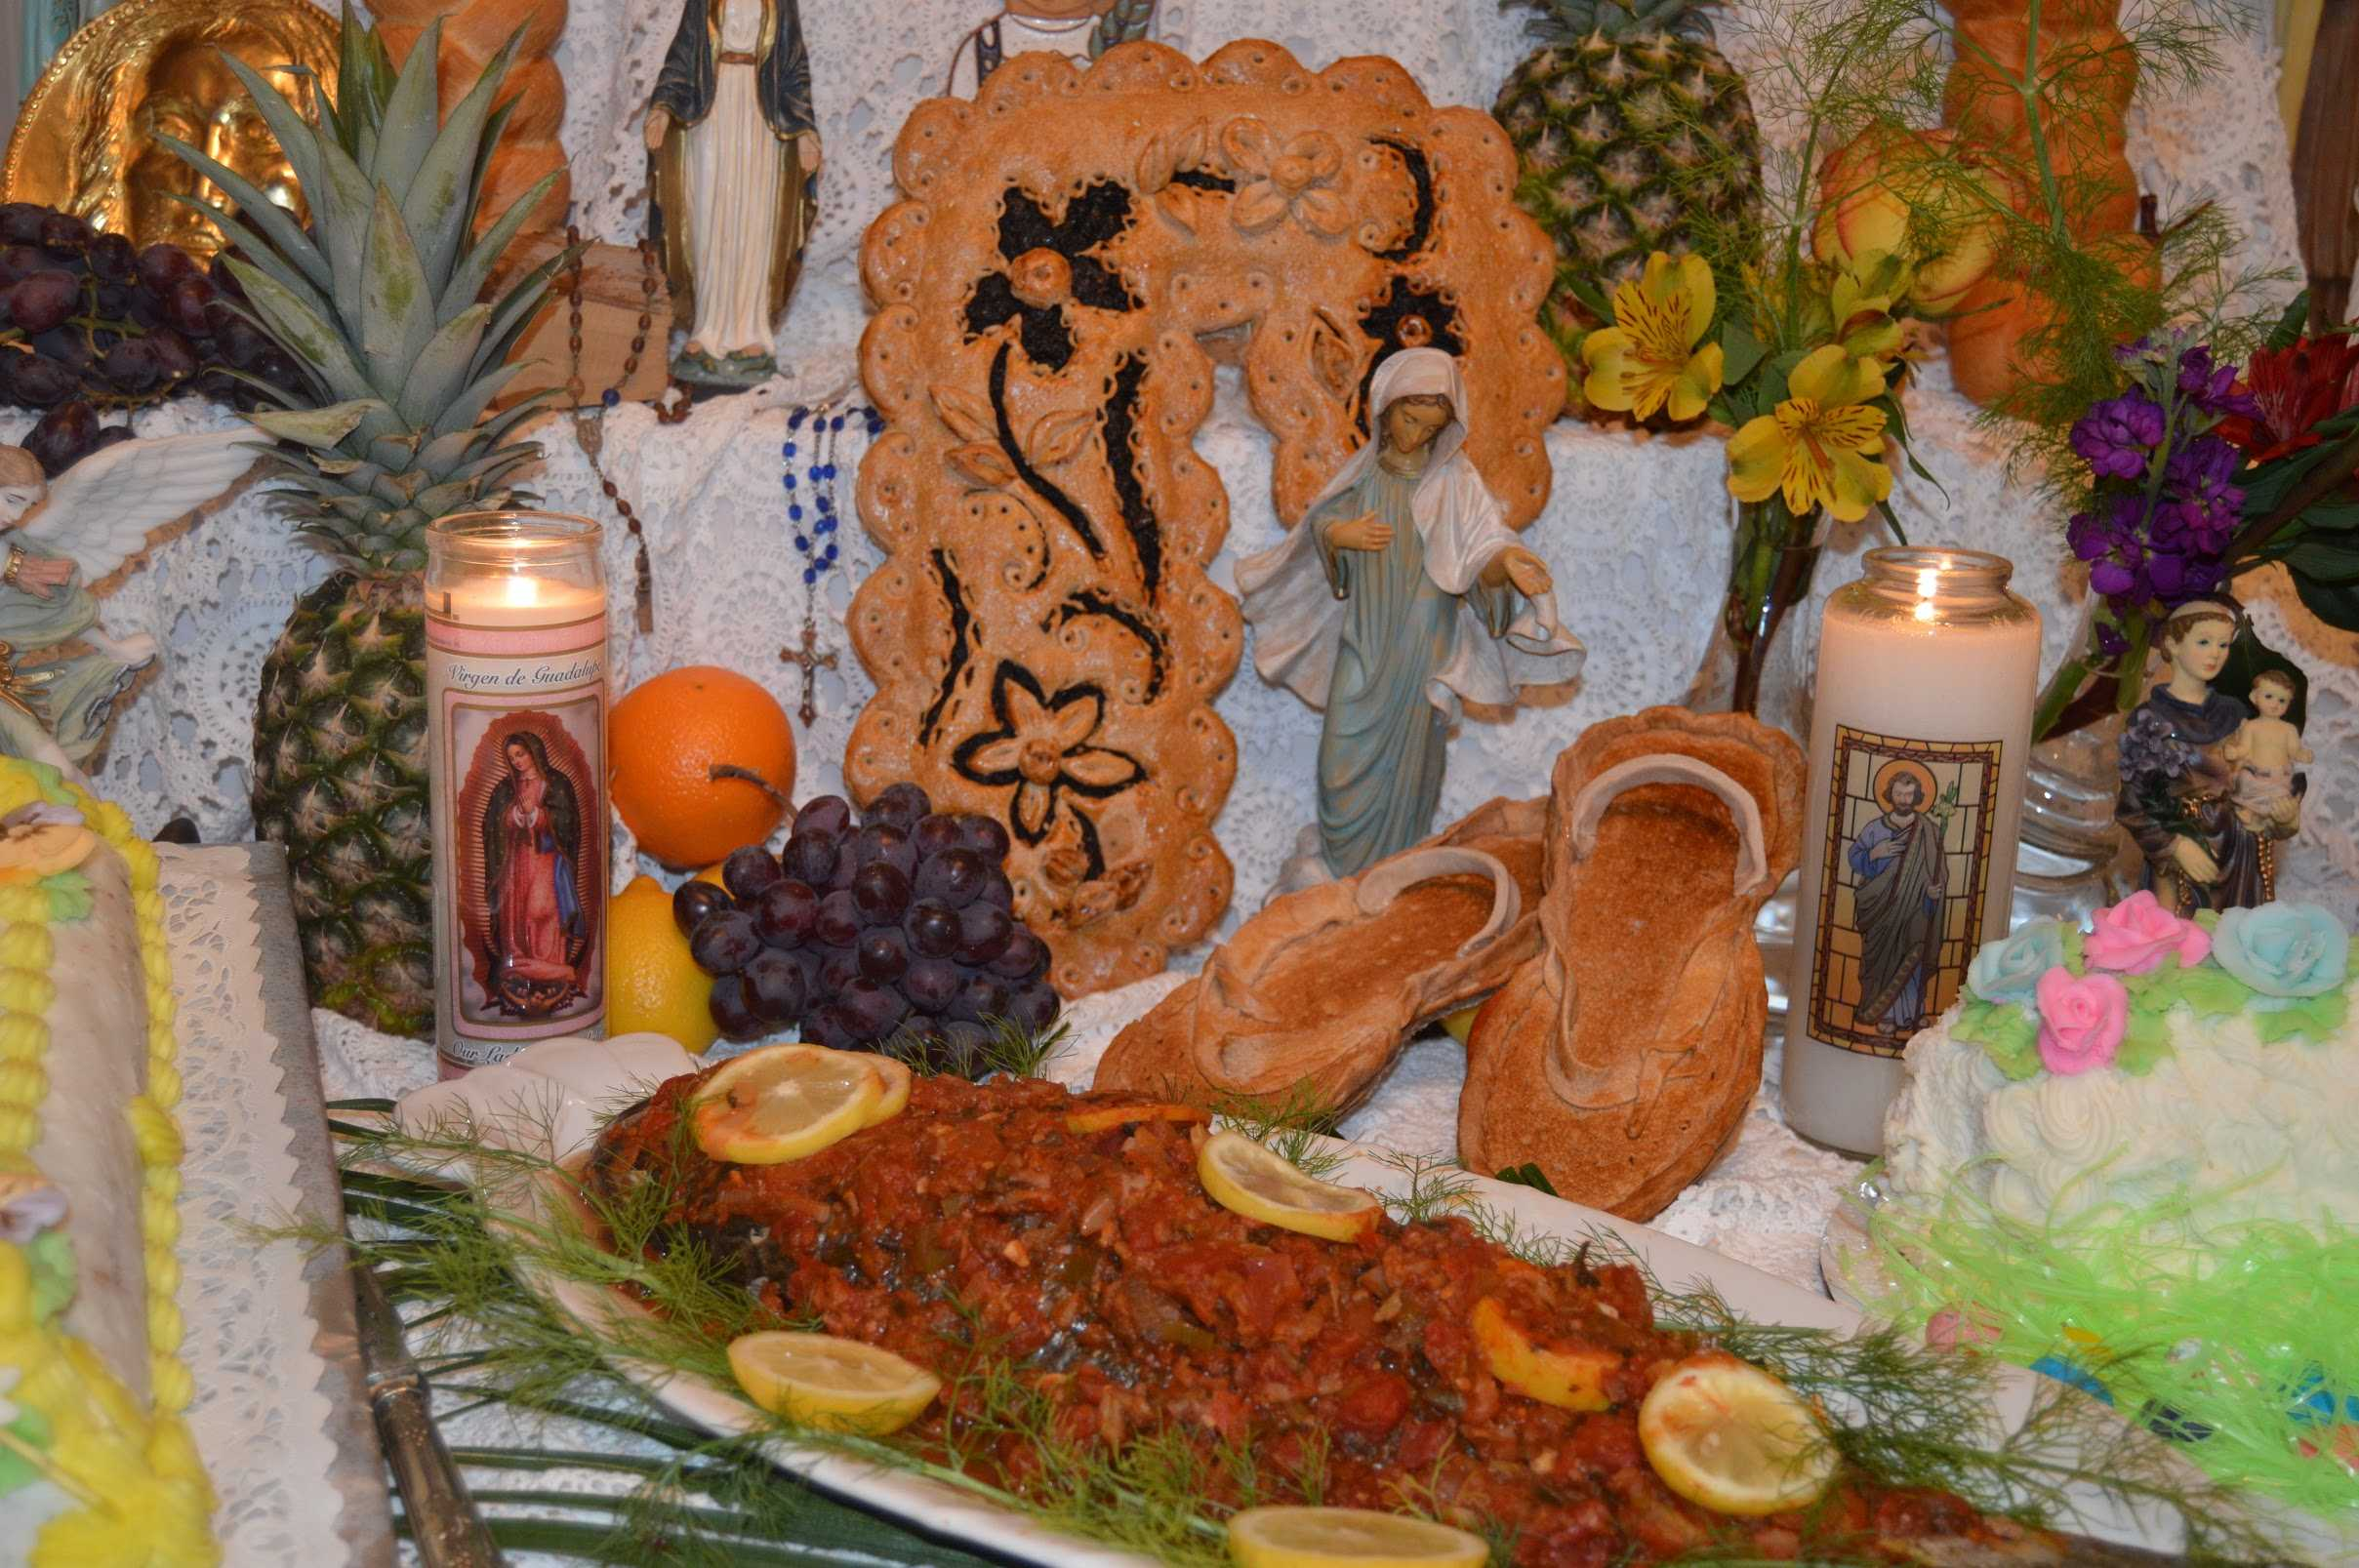 In+keeping+with+tradition%2C+flowers%2C+fish%2C+fruit%2C+vegetables%2C++and+wheat+products+in+the+form+of+decorative+breads+and+pastries+are+placed+on+the+Altar+along+with+statues+and+candles.+